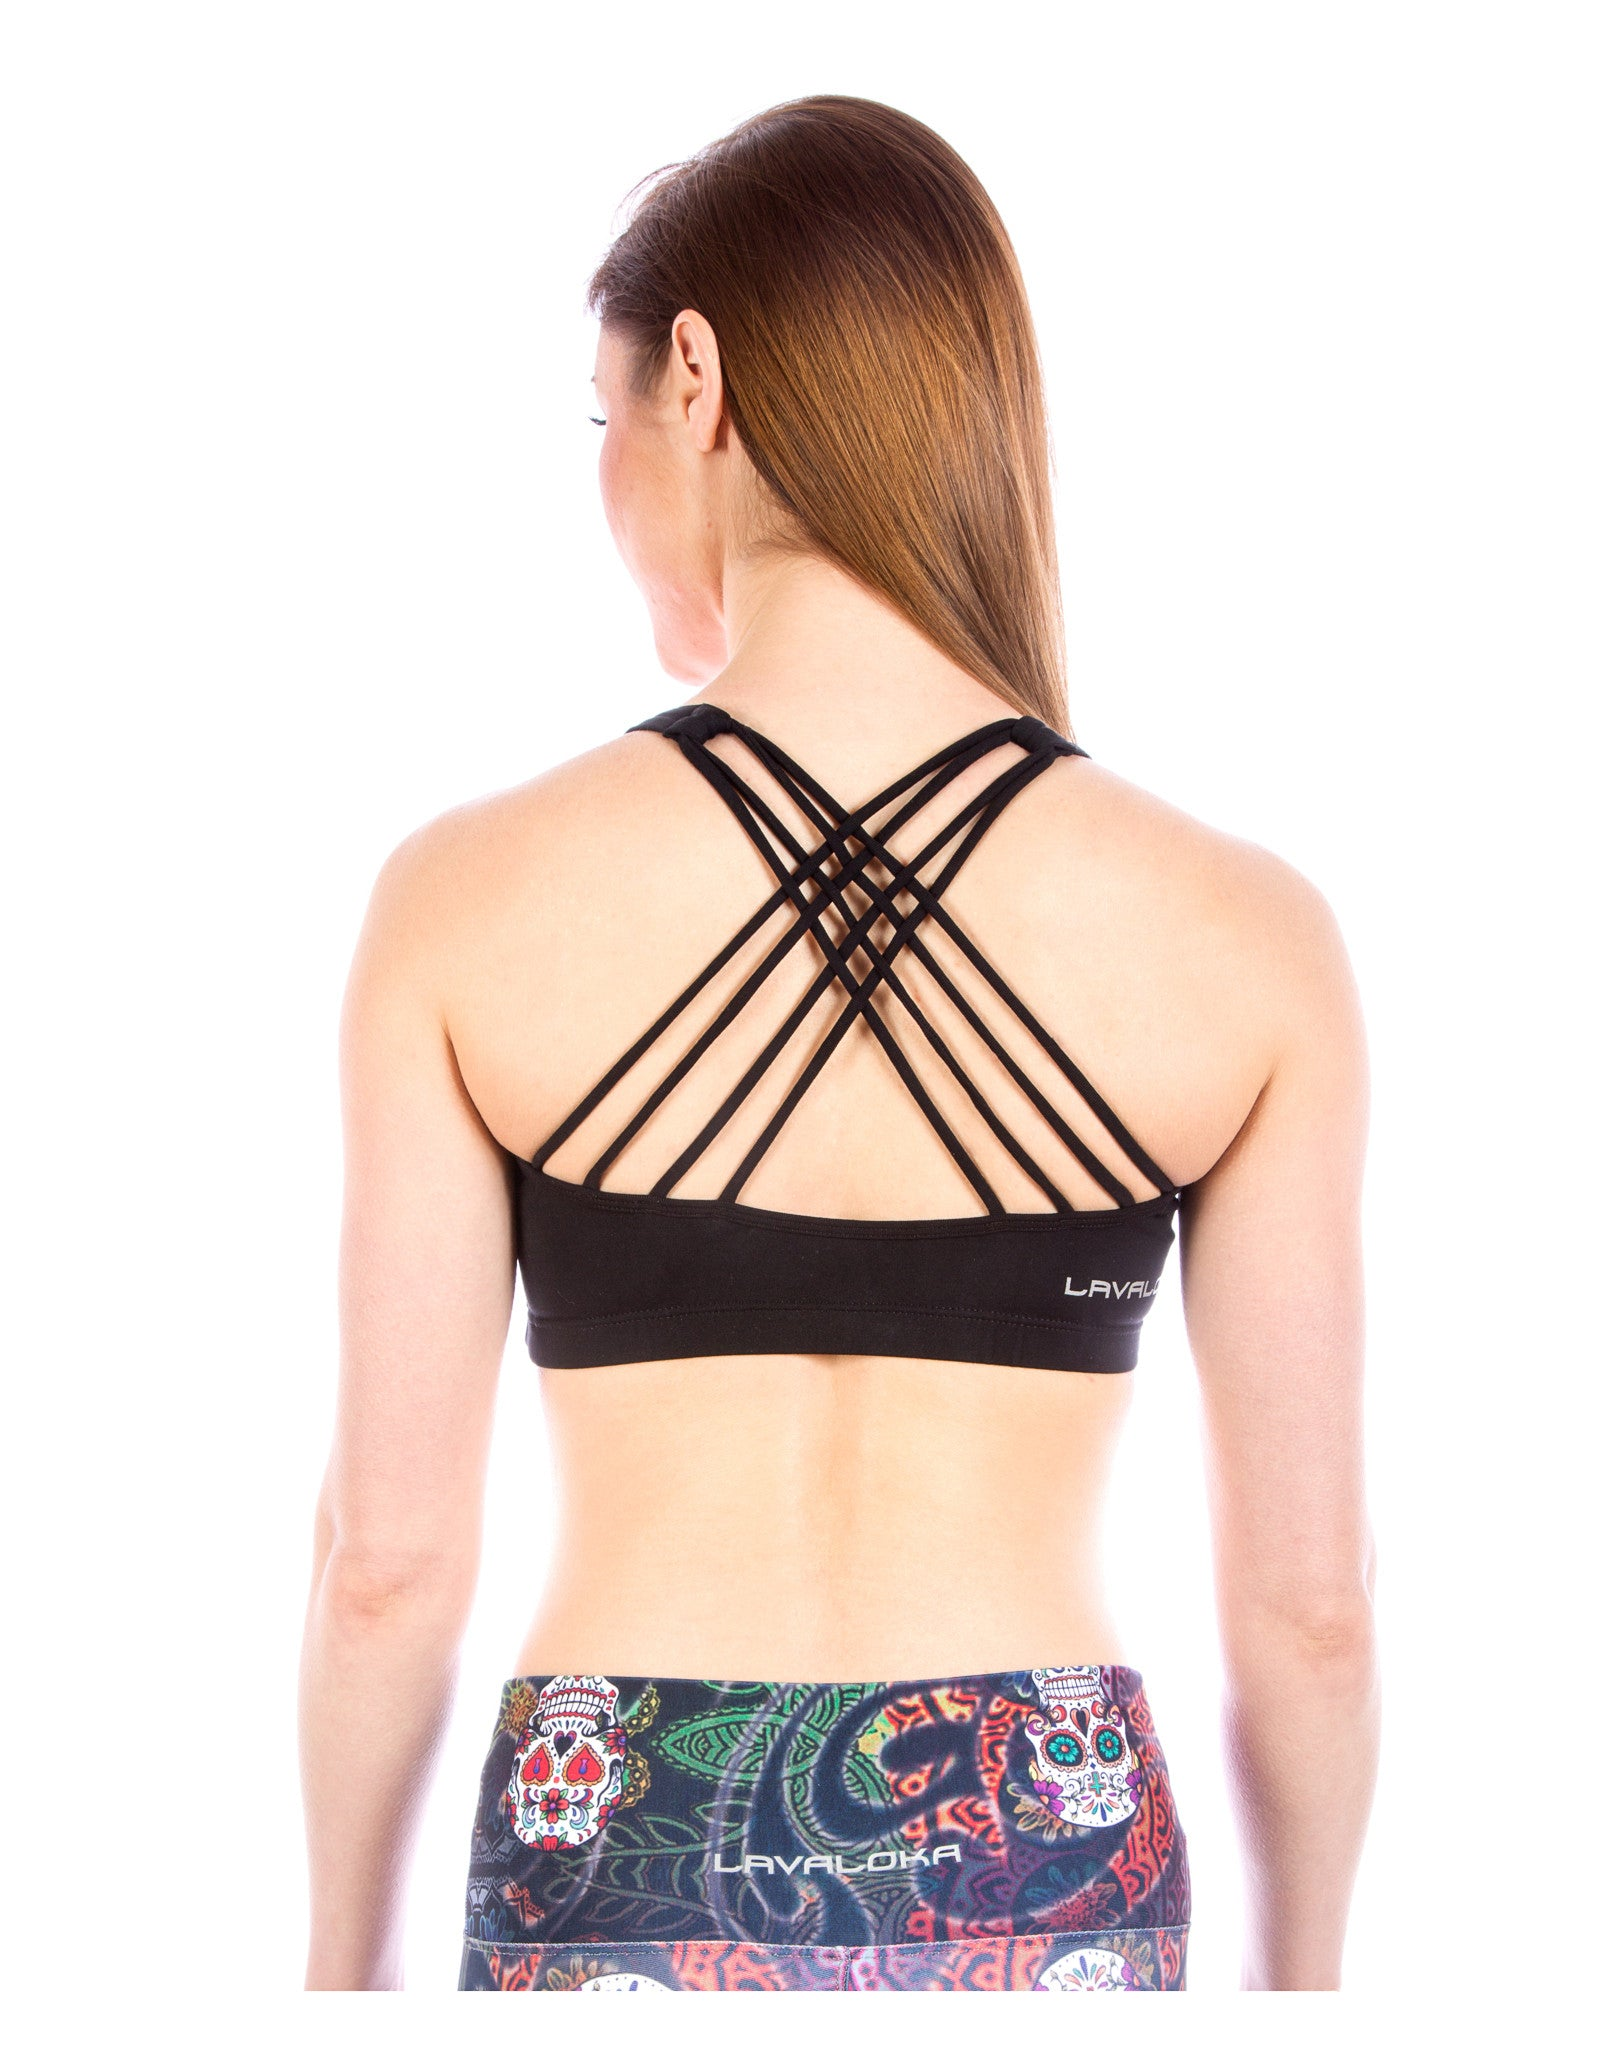 Sports Bra - Samantha Sports Bra LavaLoka - Black - buy it in every color